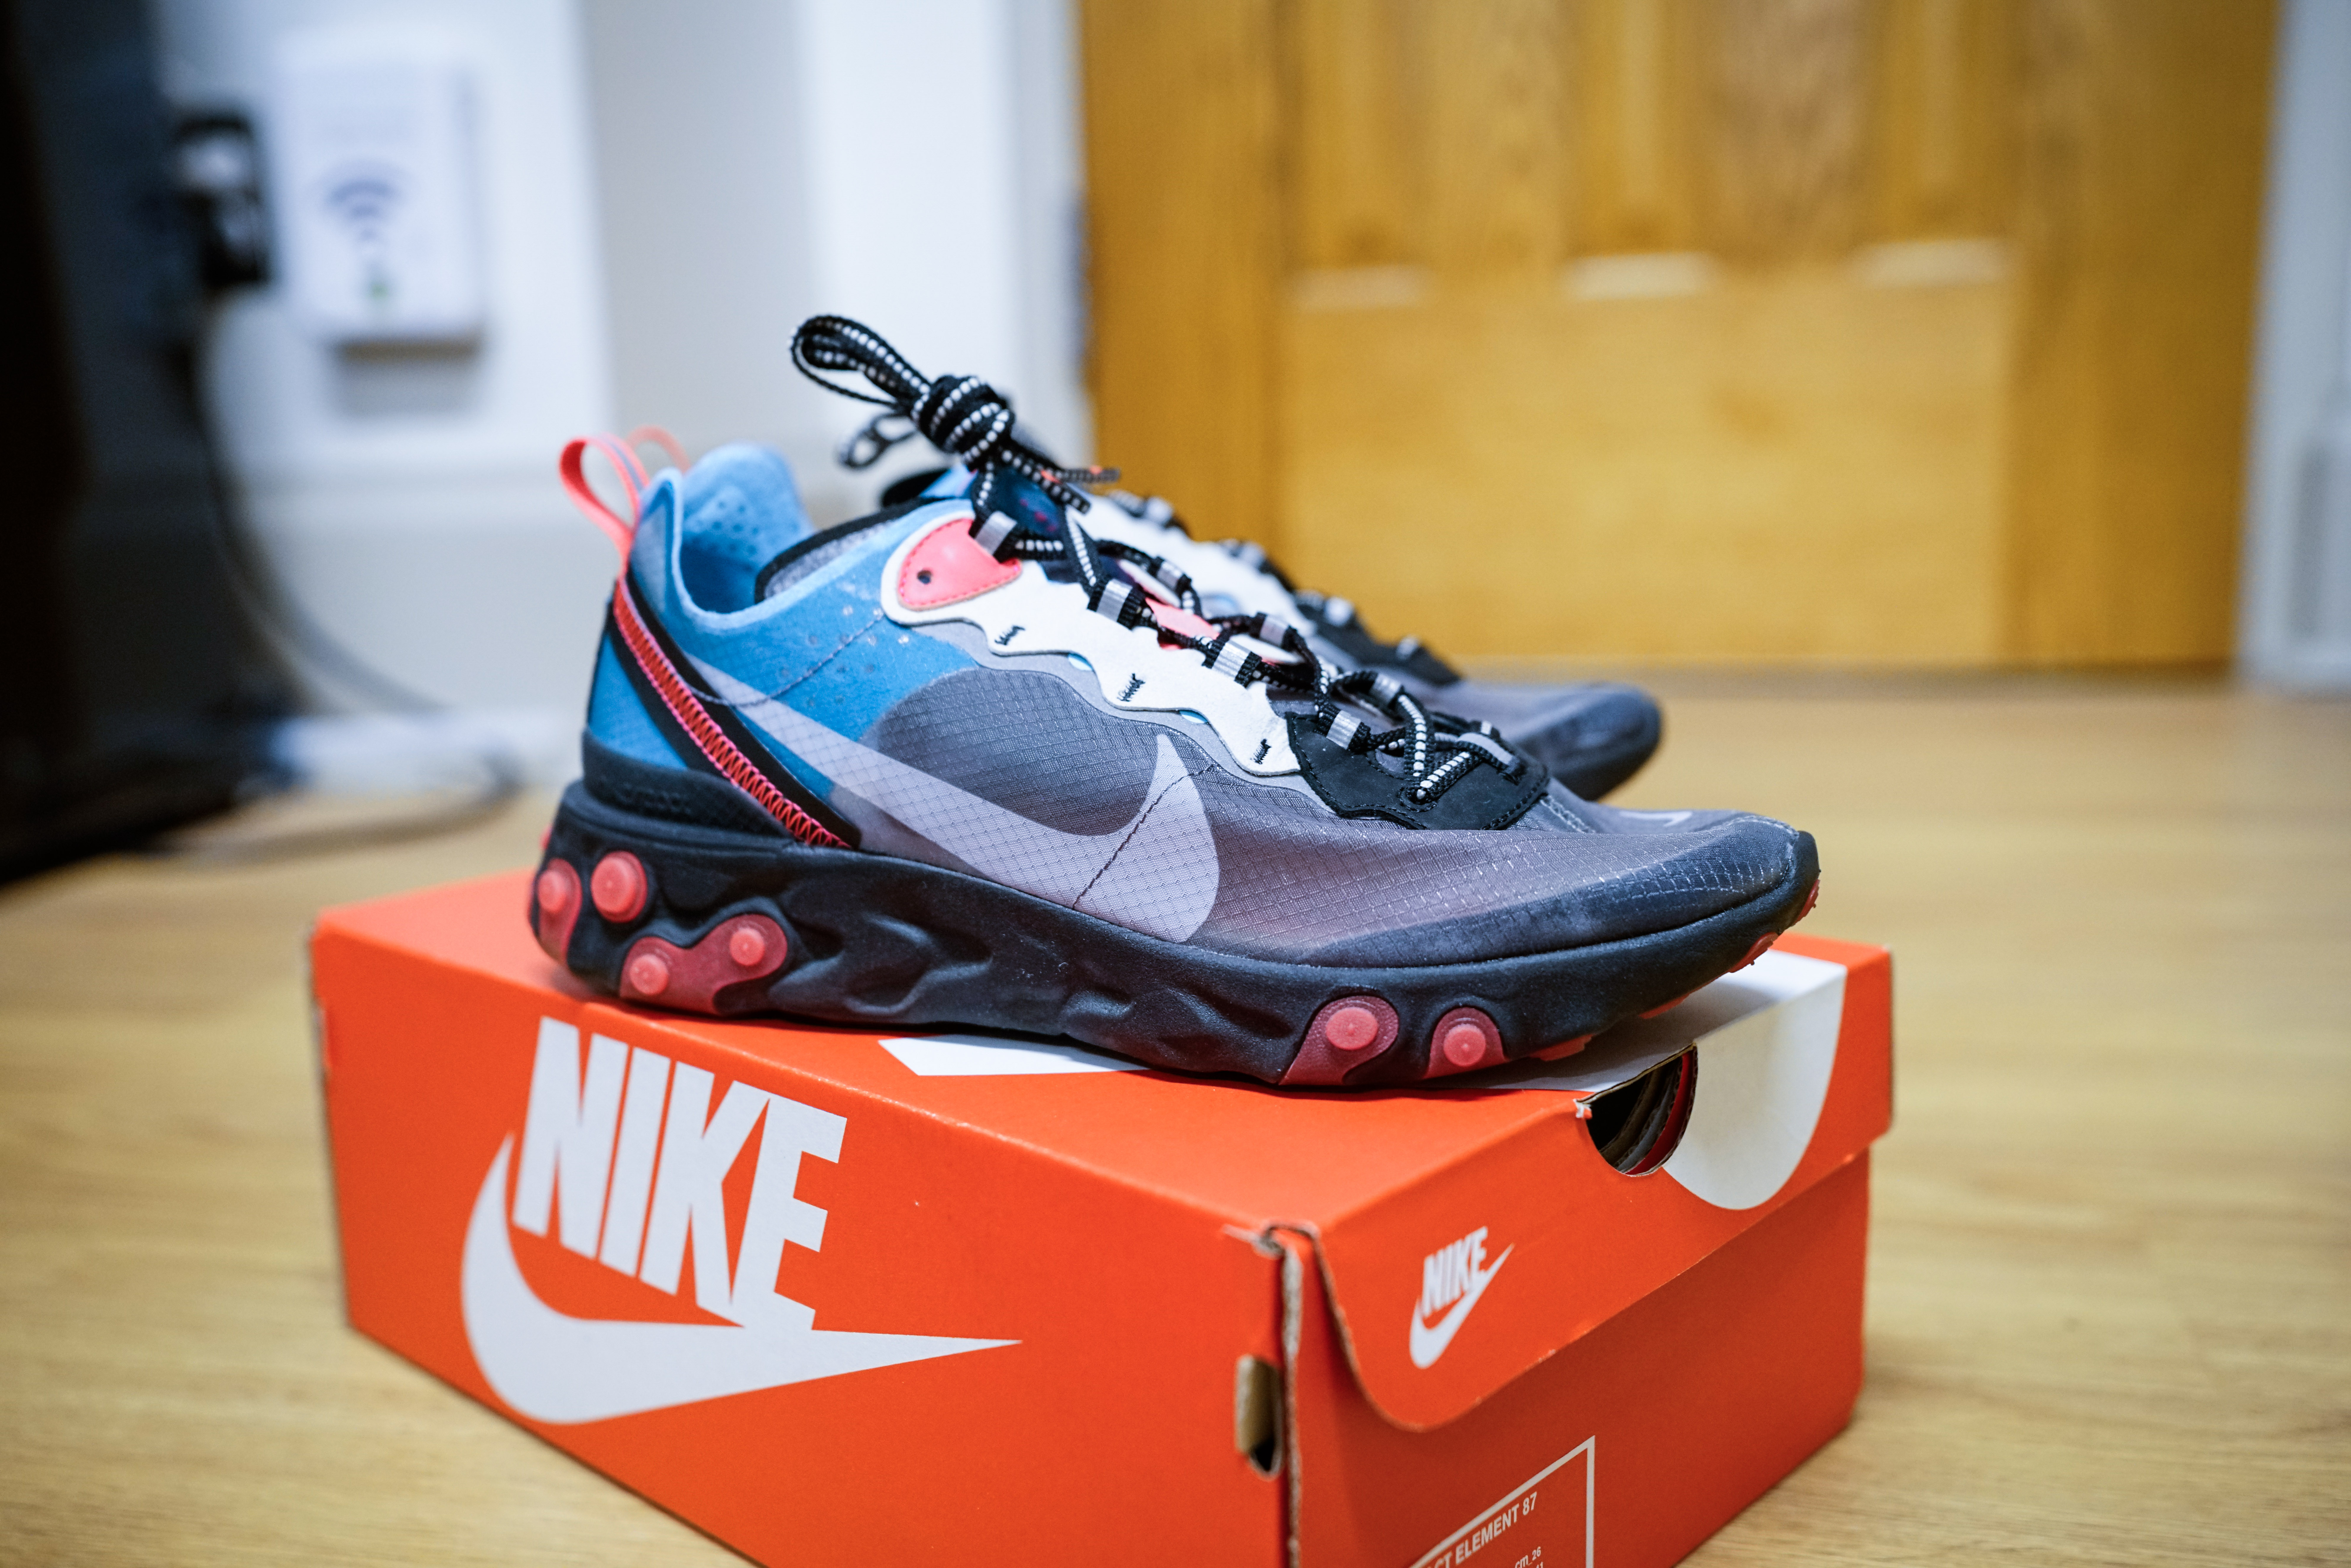 298f2944149ef Nike Nike React Element 87 Blue Chill Solar Red Size 8 - Low-Top Sneakers  for Sale - Grailed